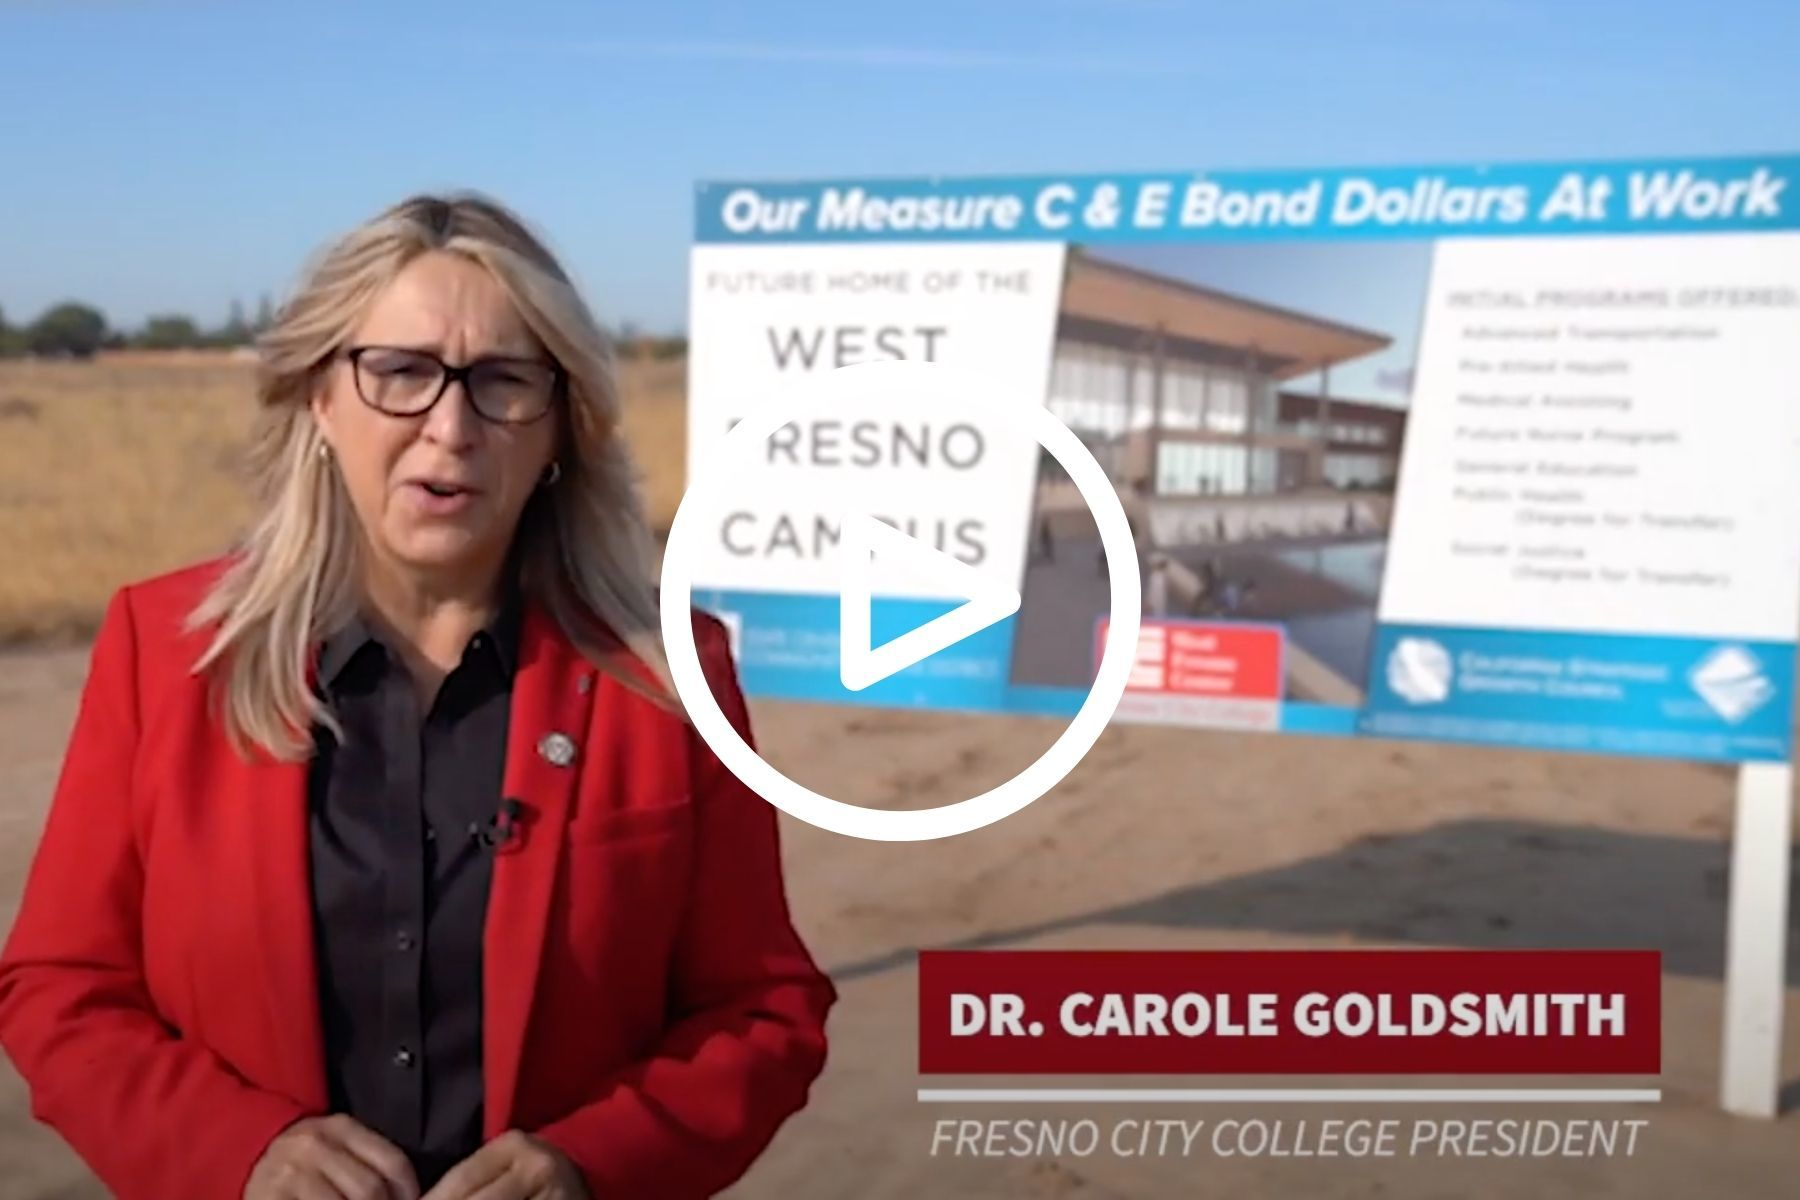 Image is of thumbnail for West Fresno Campus video